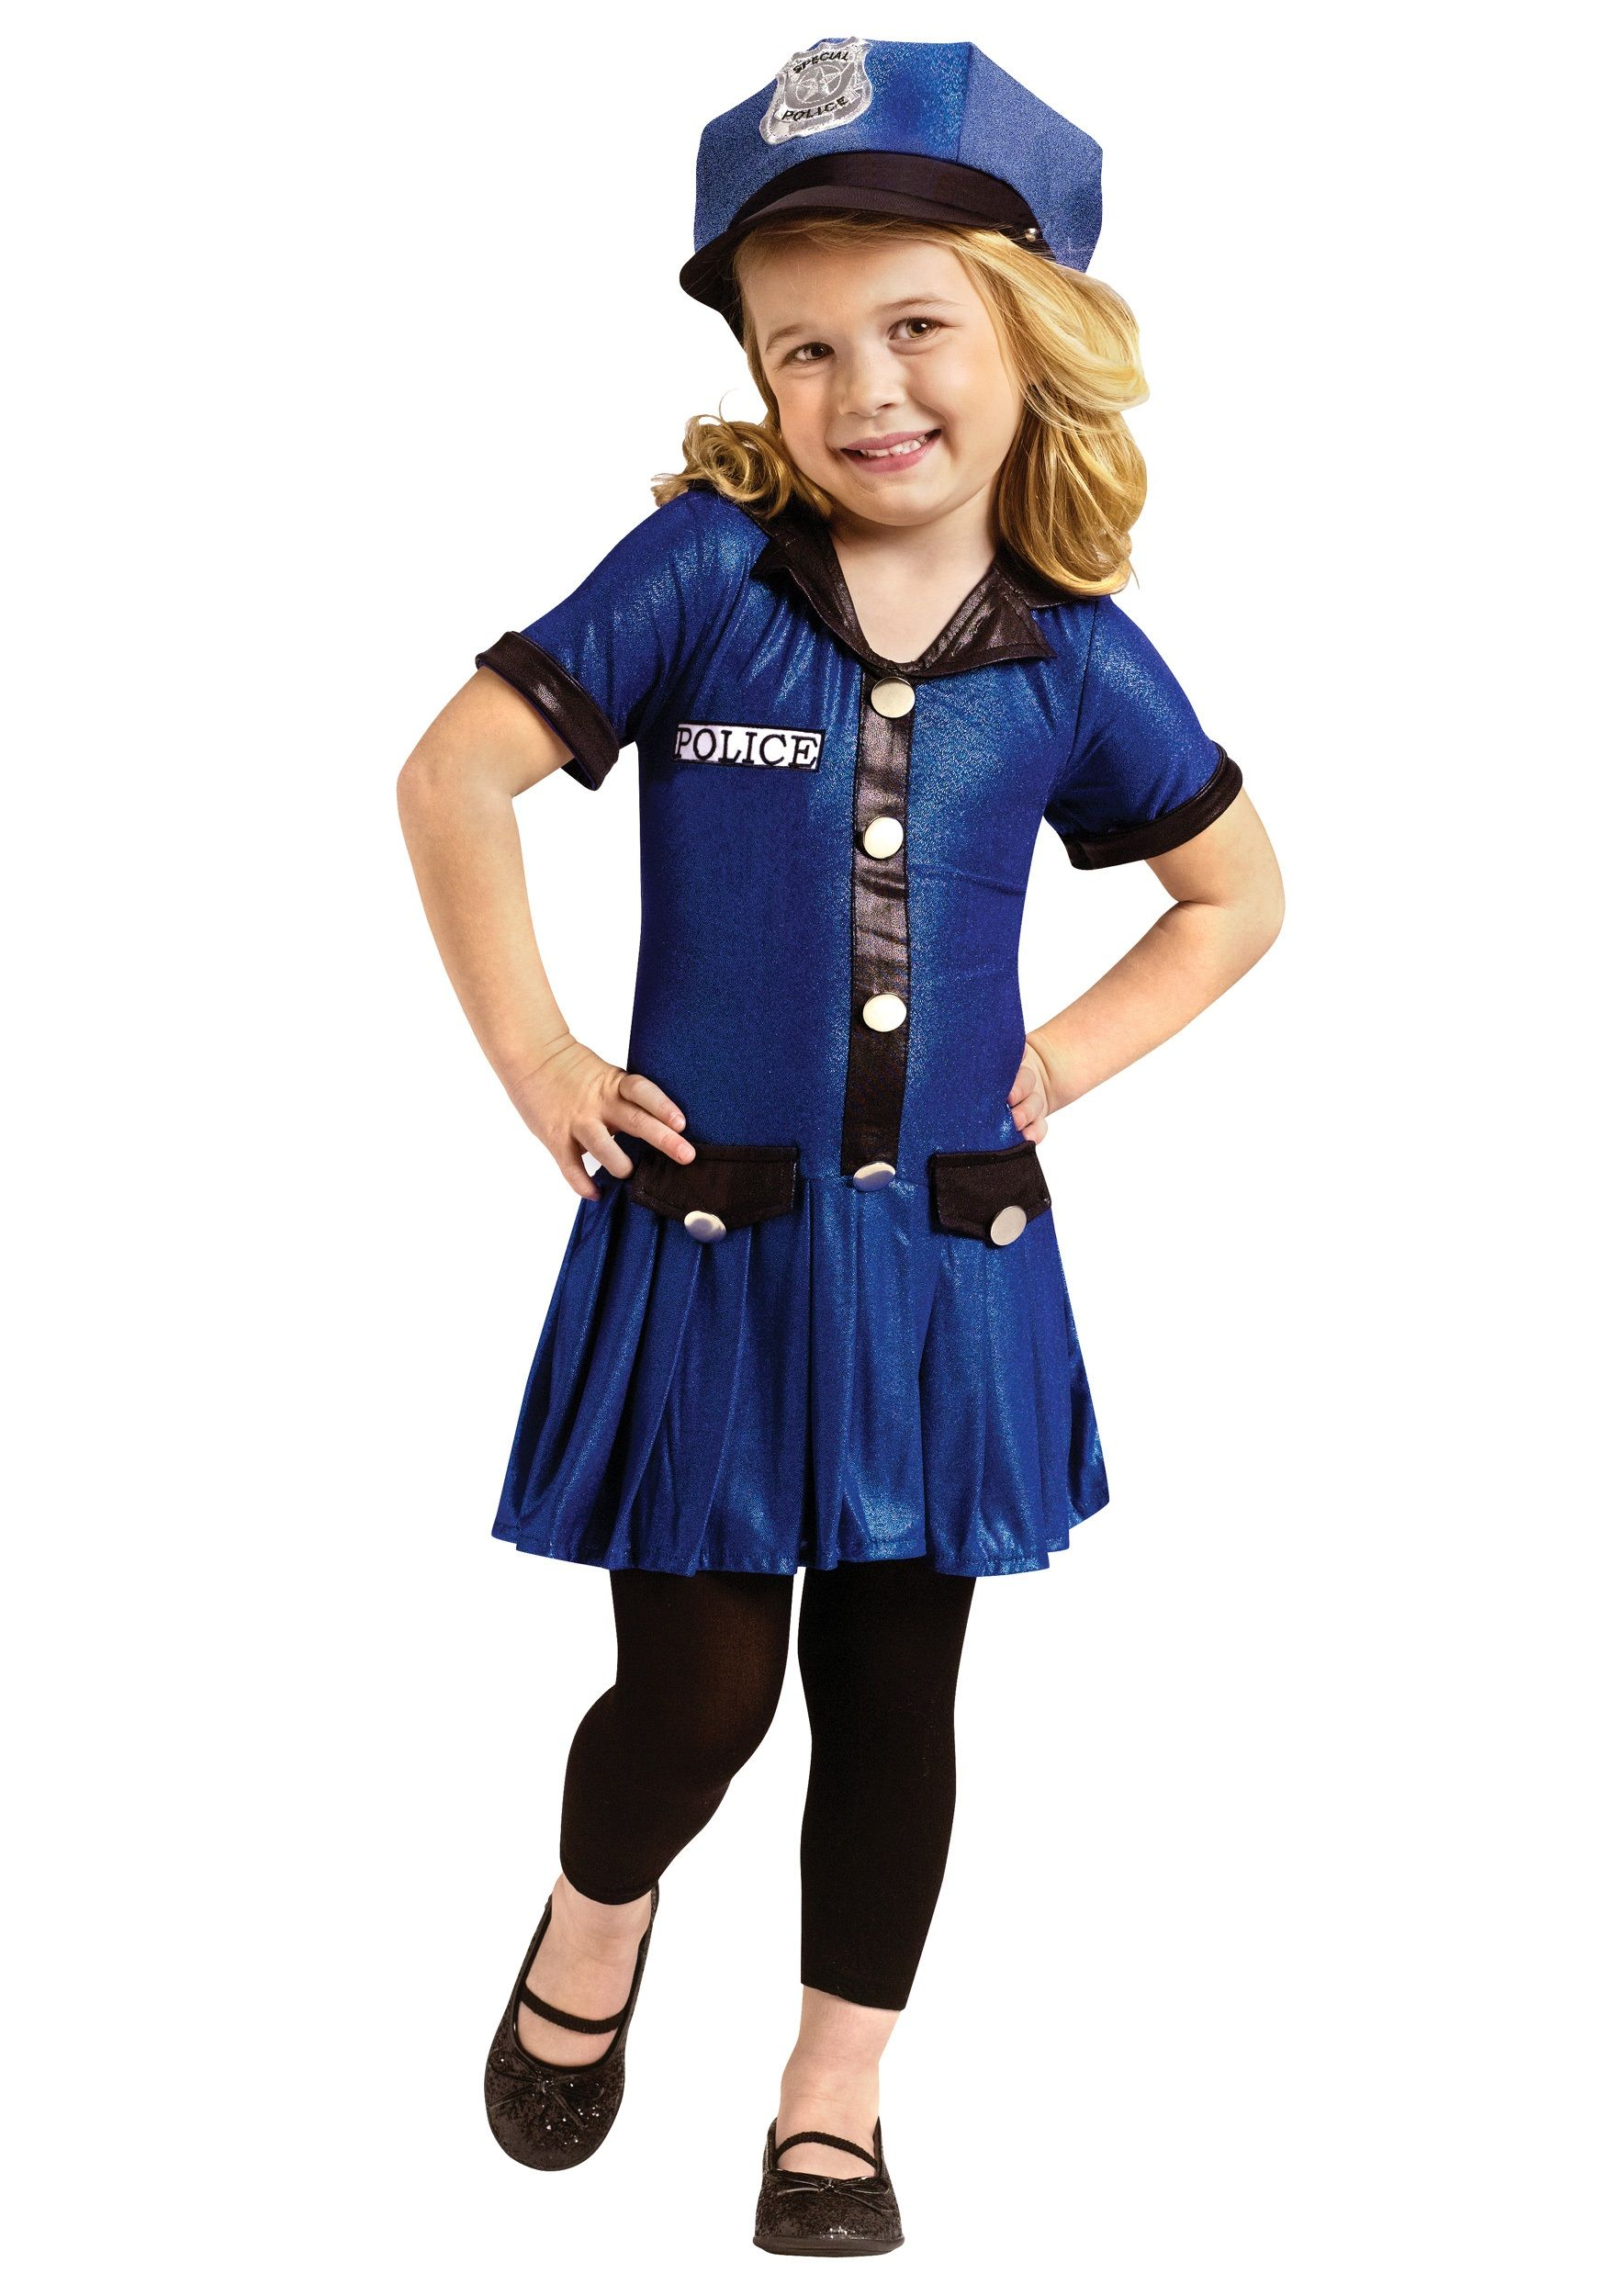 girl costumes girl cop costumes - Girls Cop Halloween Costume